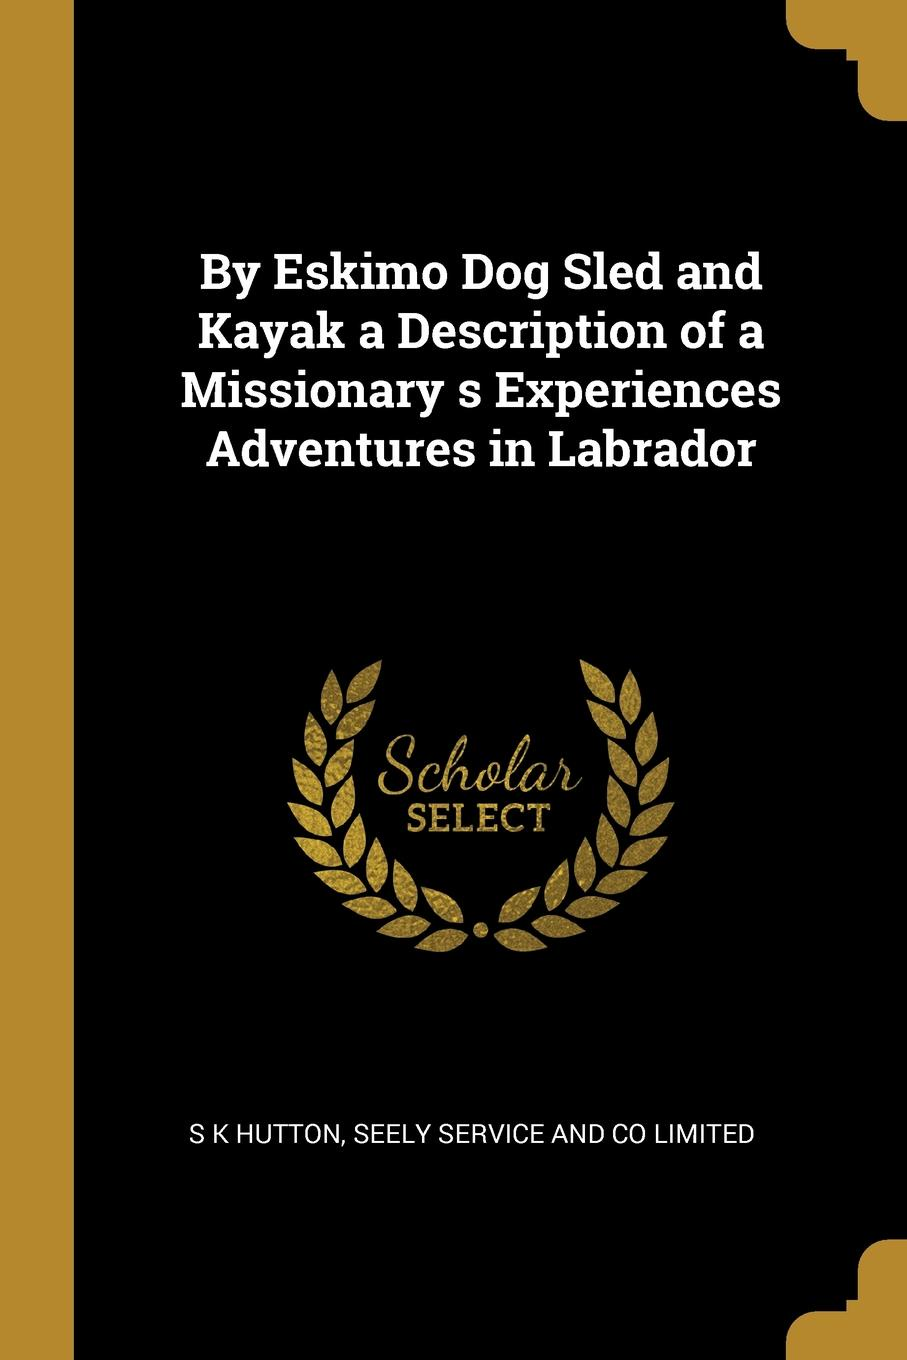 By Eskimo Dog Sled and Kayak a Description of a Missionary s Experiences Adventures in Labrador